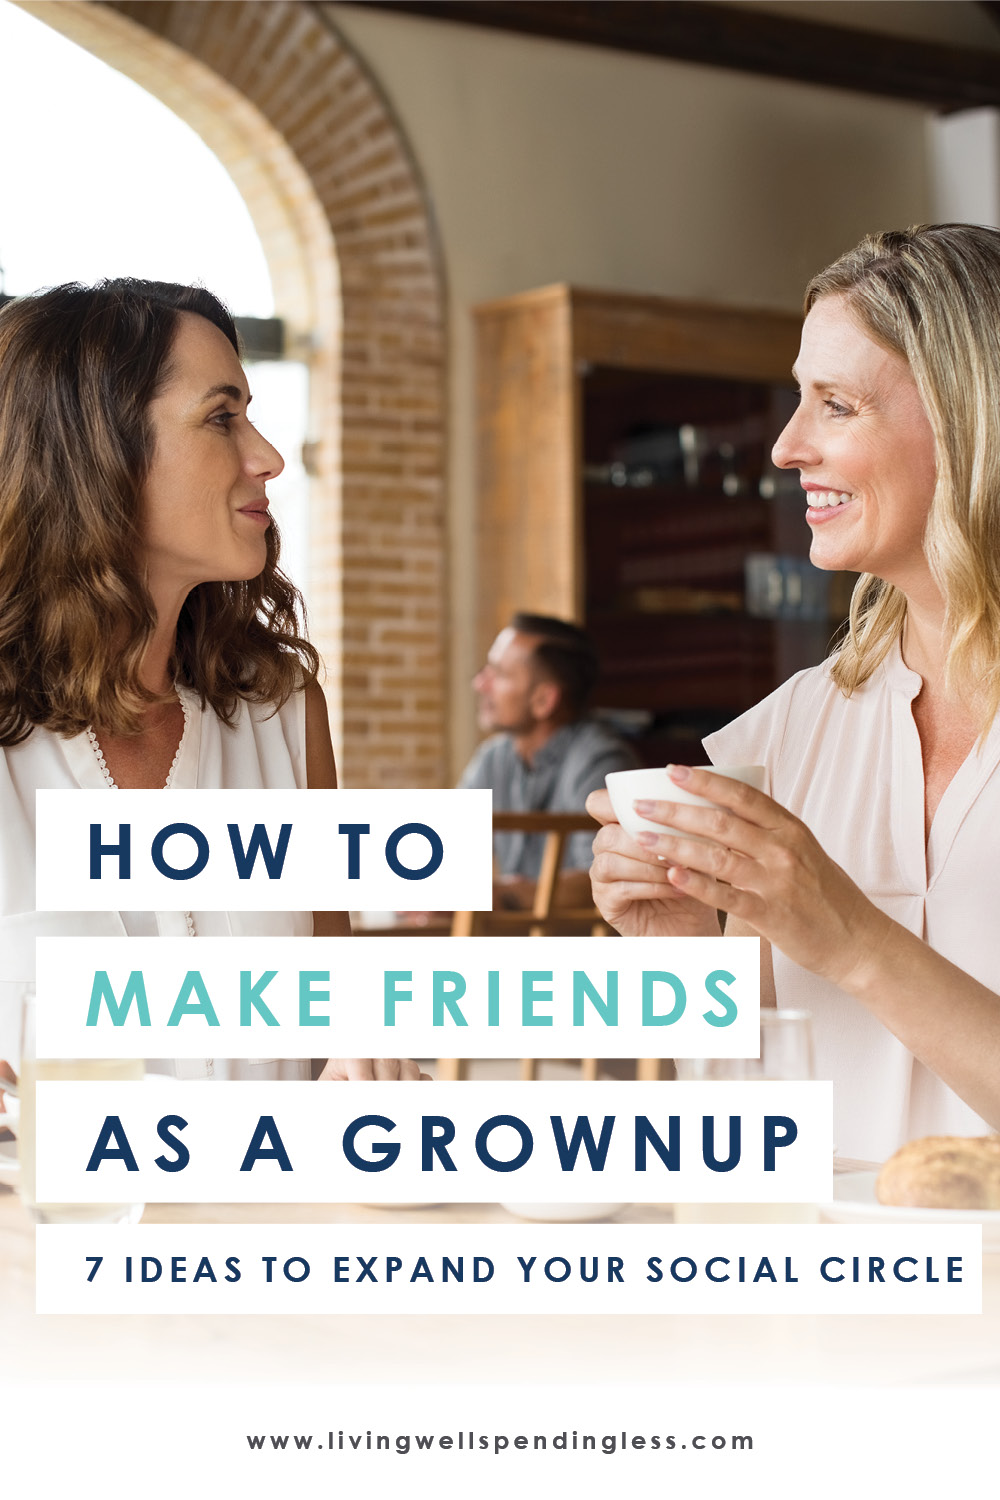 Ever feel like you struggle to make new friends? You're not alone! In fact, the average American adult hasn't made a new friend in FIVE years! But that doesn't mean you can't start now. If you're ready to expand your circle, don't miss these 7 smart ideas for making new friends as a grownup! #friendship #lifehack #friends #bffs #newfriends #adultrelationships #relationships